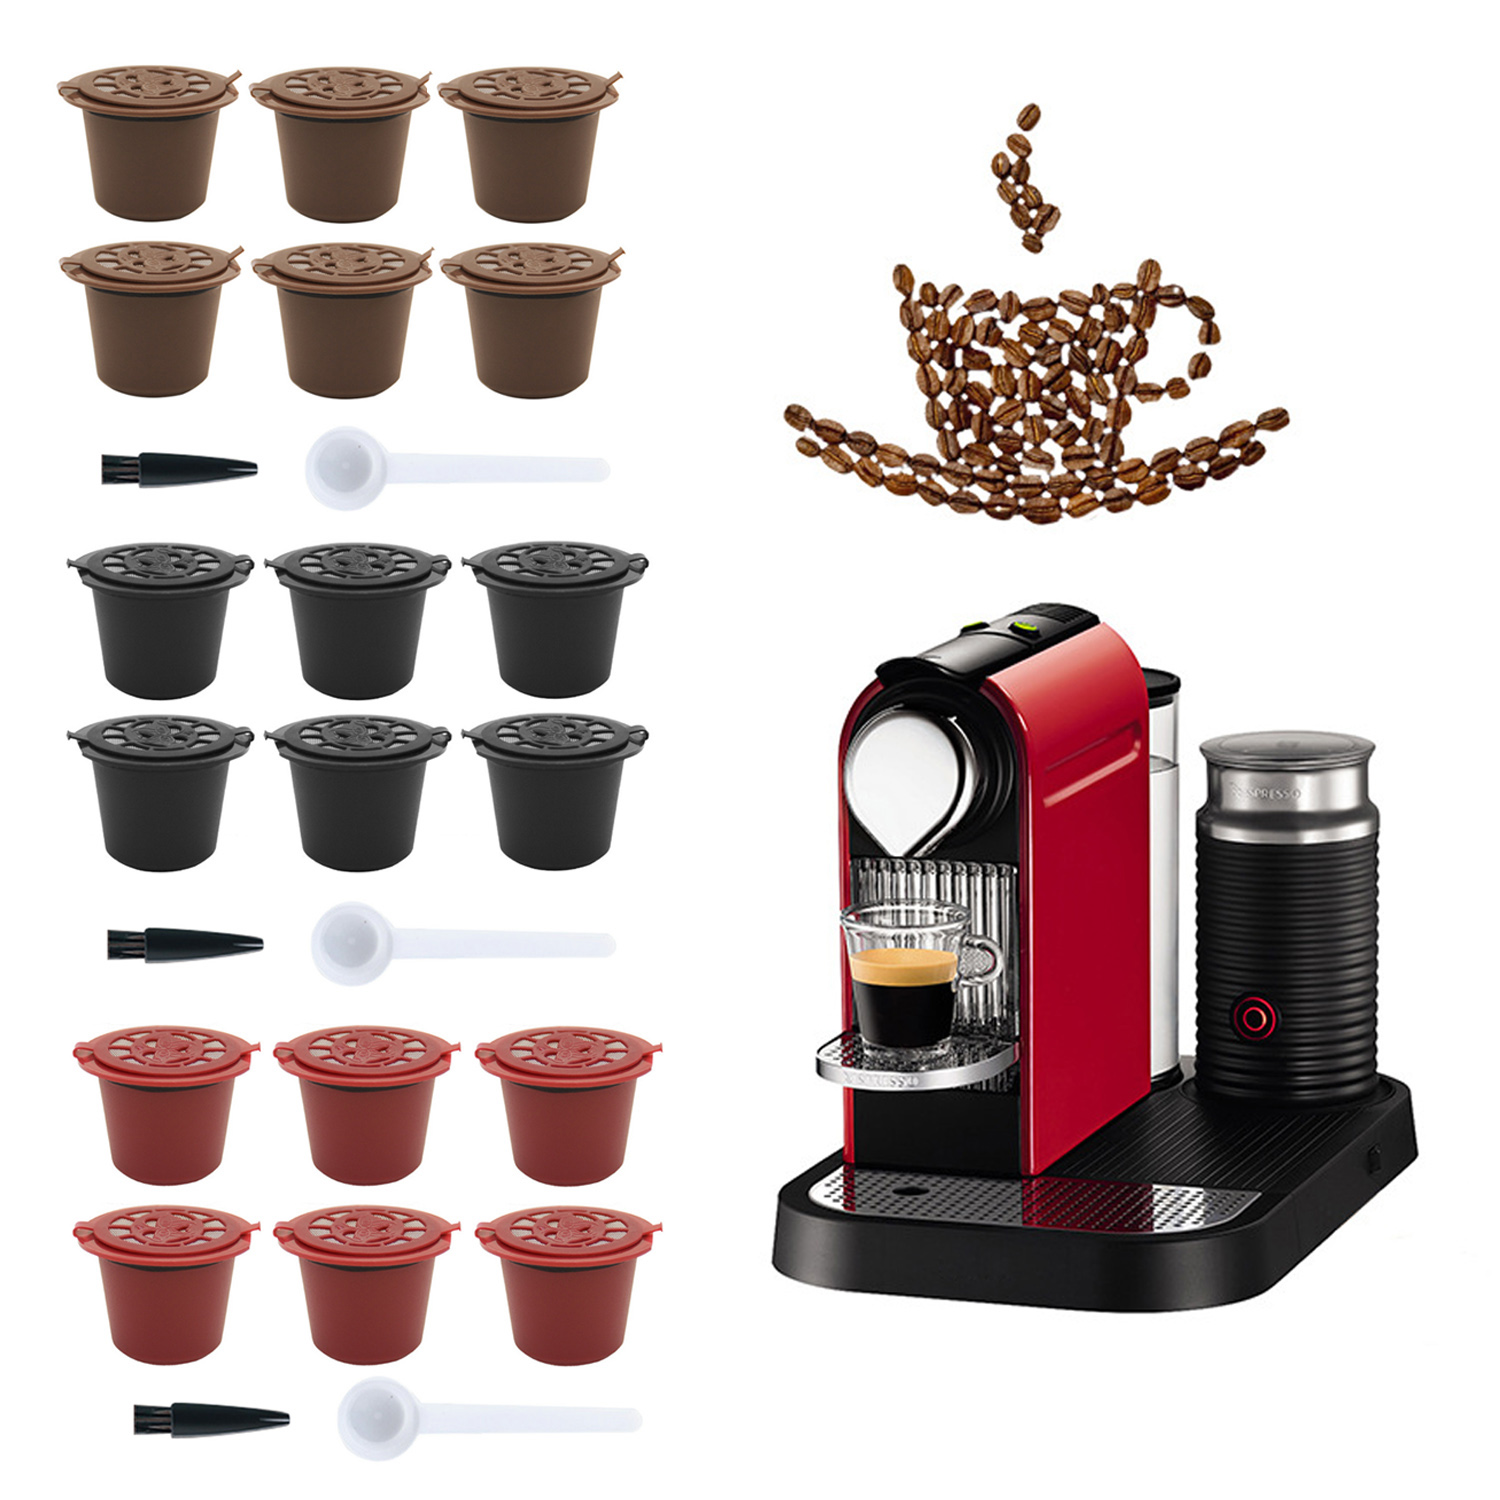 Behogar 6PCS Refillable Reusable Capsule Cup Filter With Spoon Brush For Nespresso Coffee Machine Maker Nespresso Coffee Capsule